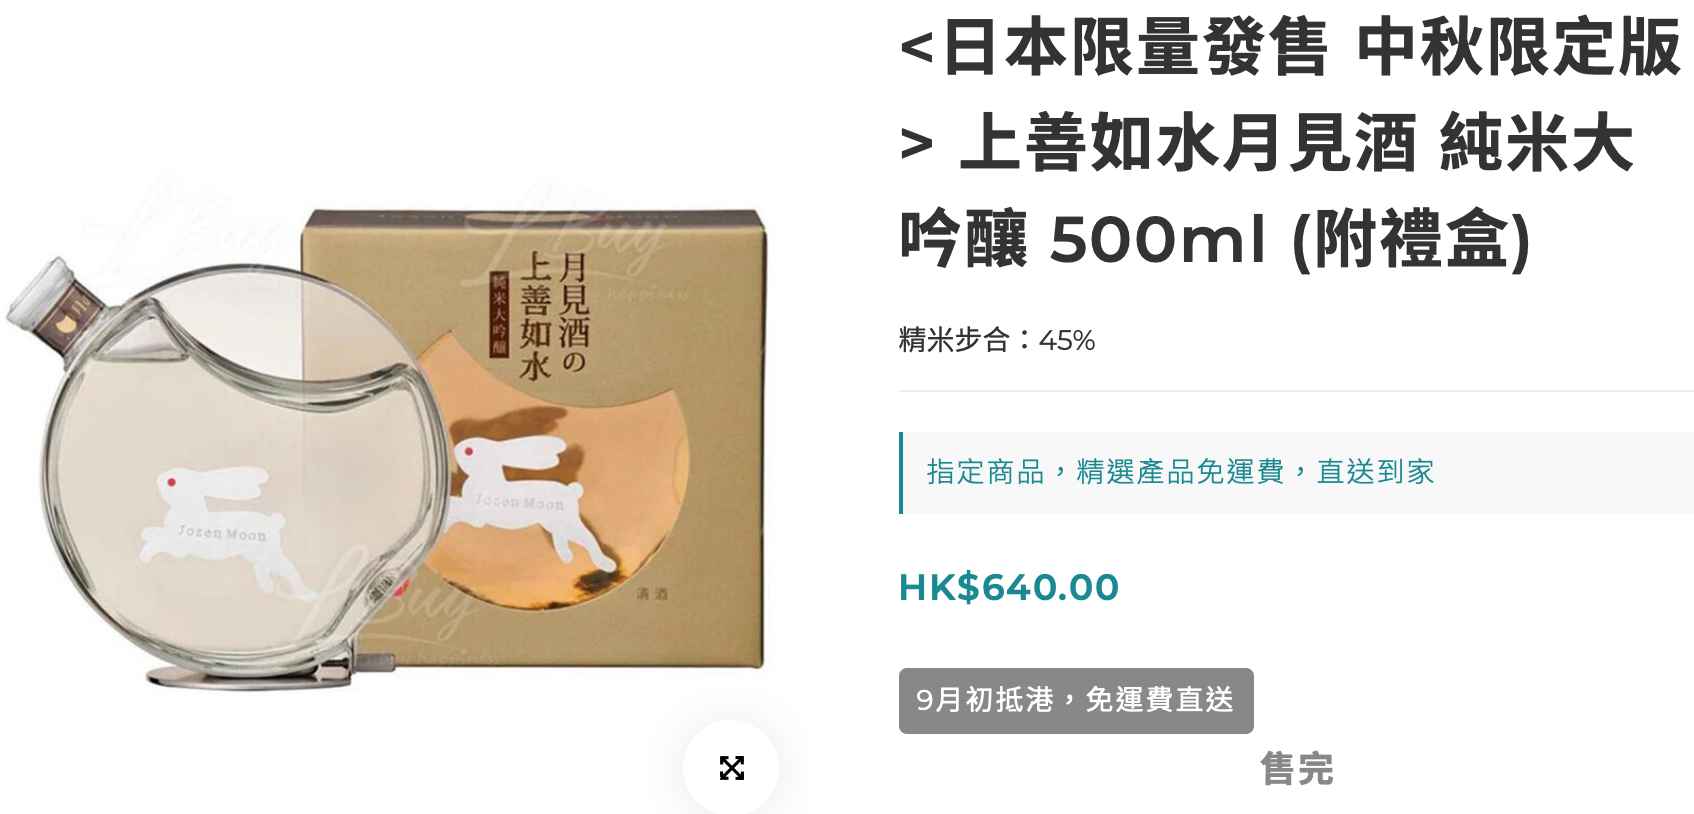 rice wine mid-autumn festival limited edition HTMall